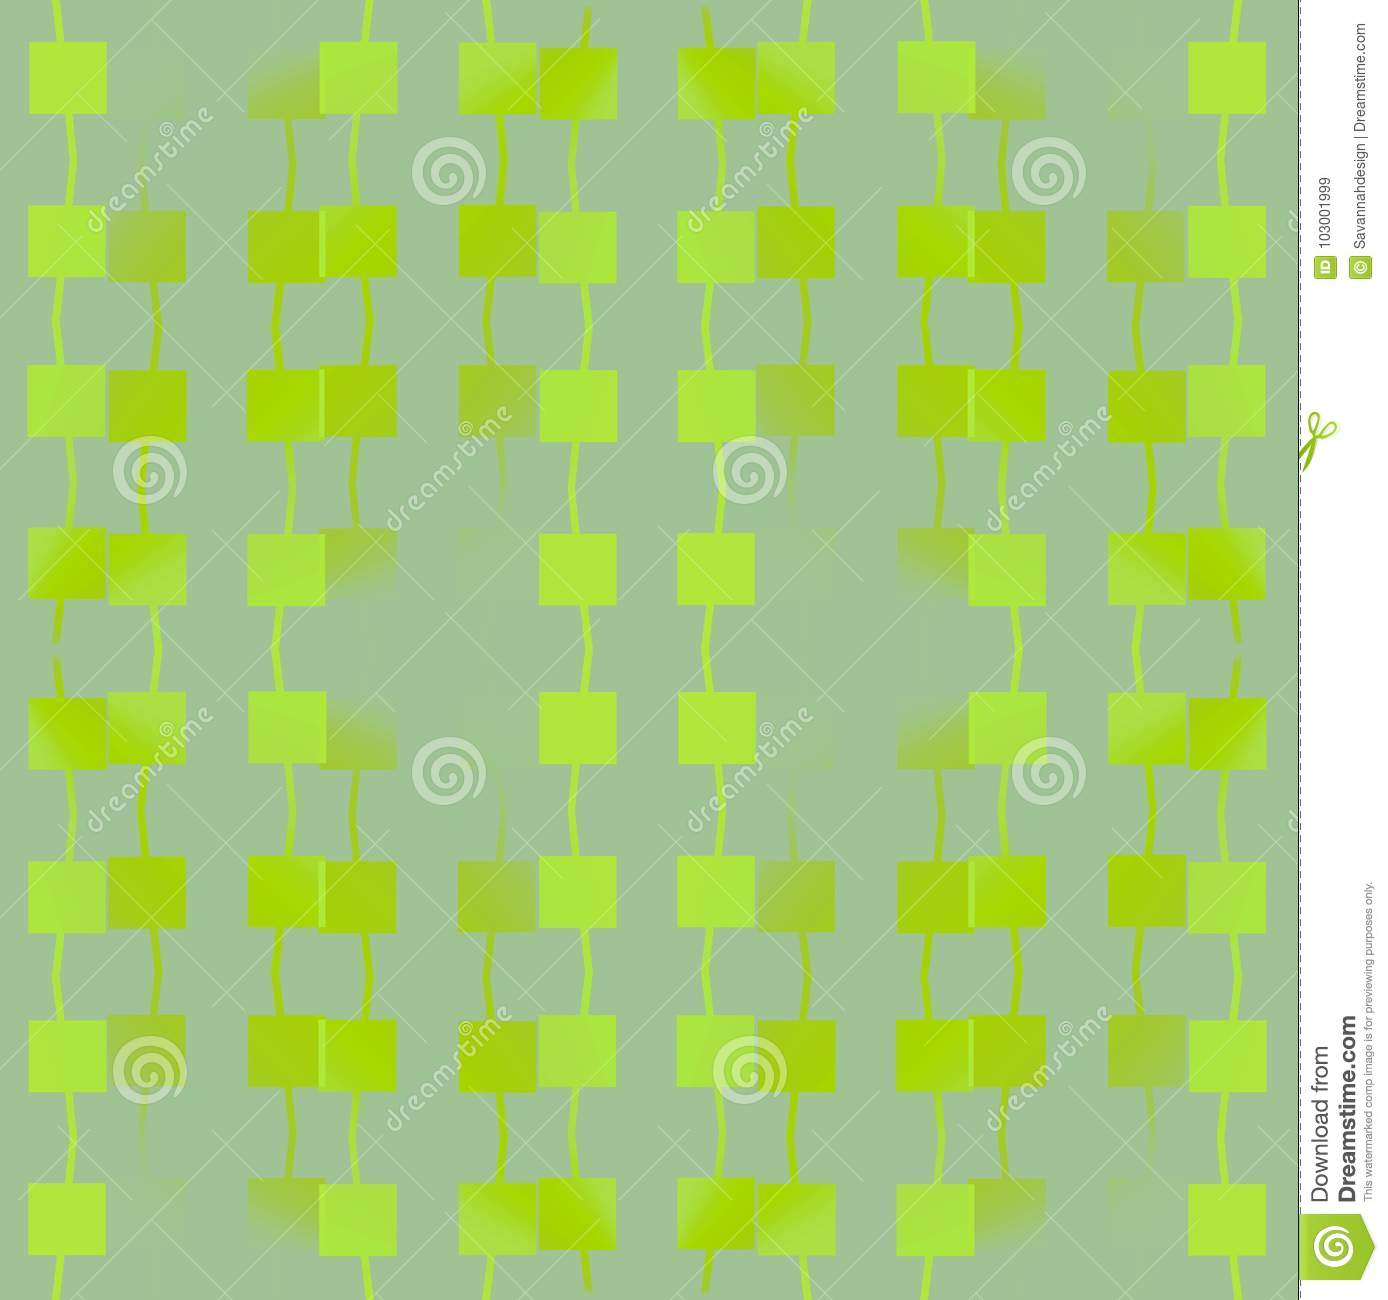 Regular Squares Pattern With Wiggly Lines Lemon Lime And Light Green ...